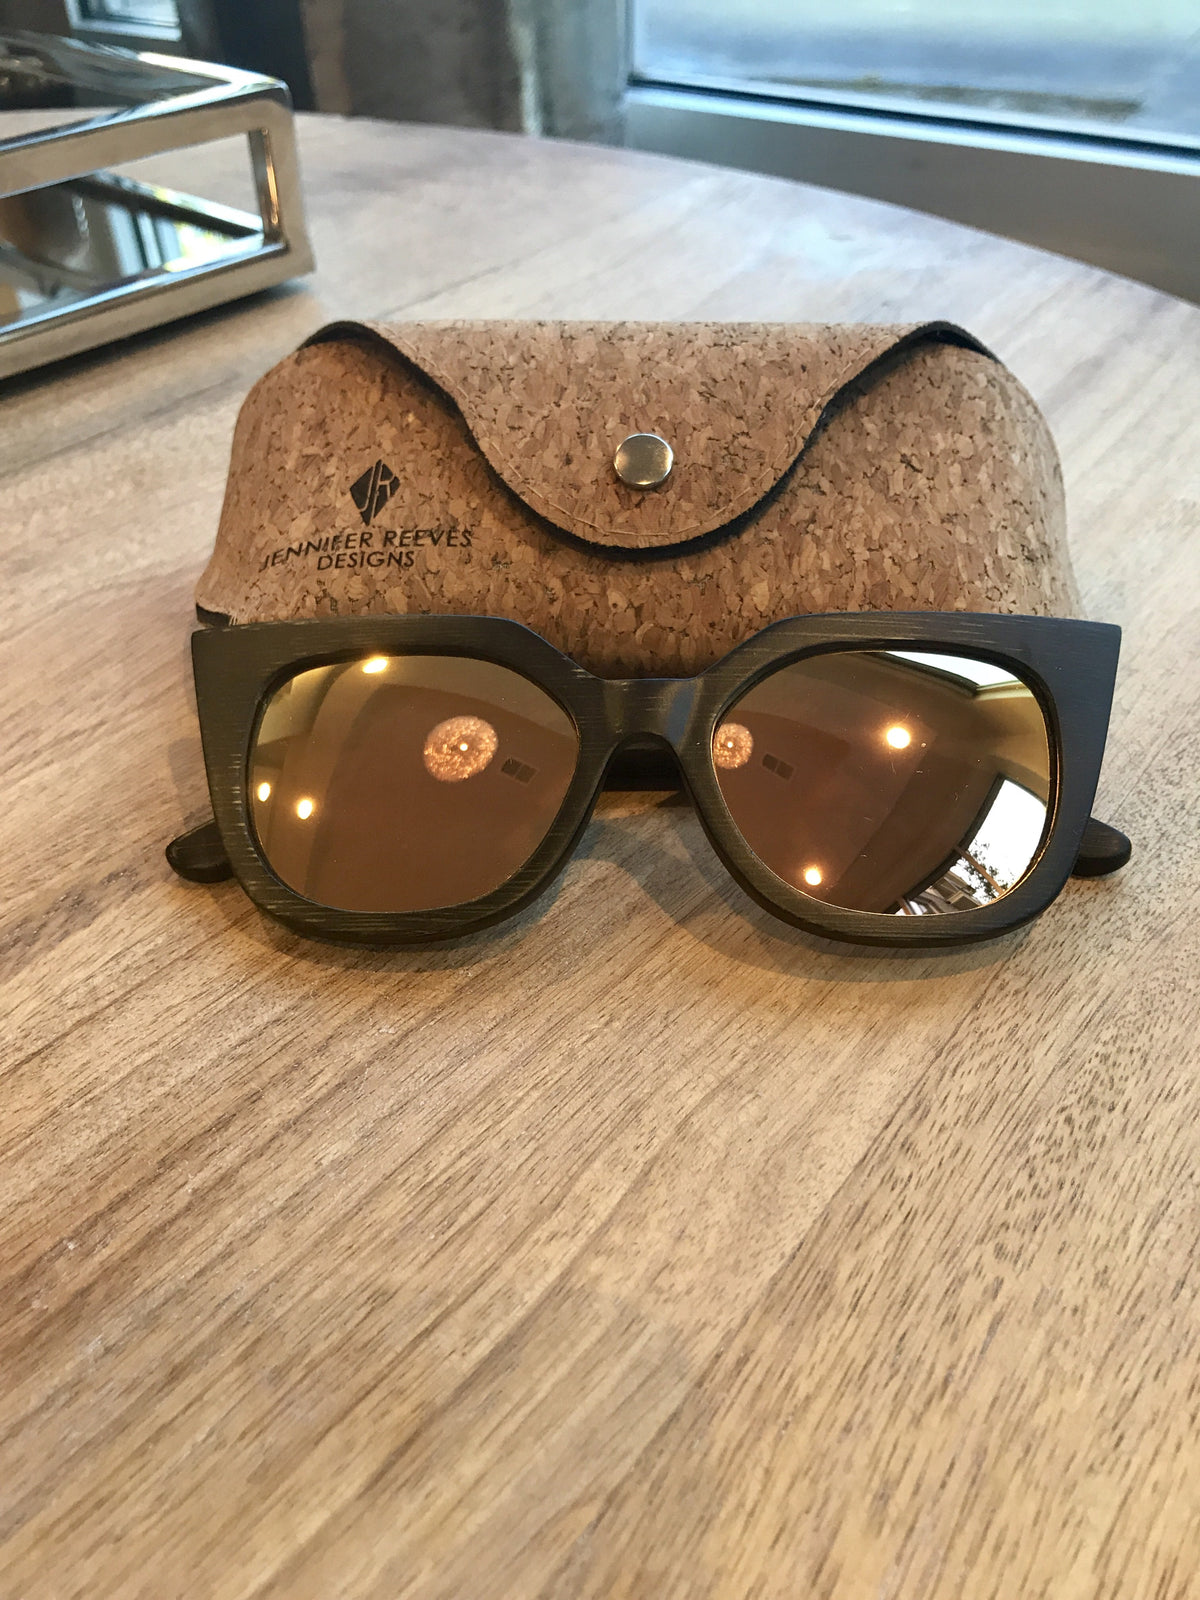 Cat eye bamboo sunglasses by Jennifer Reeves Designs